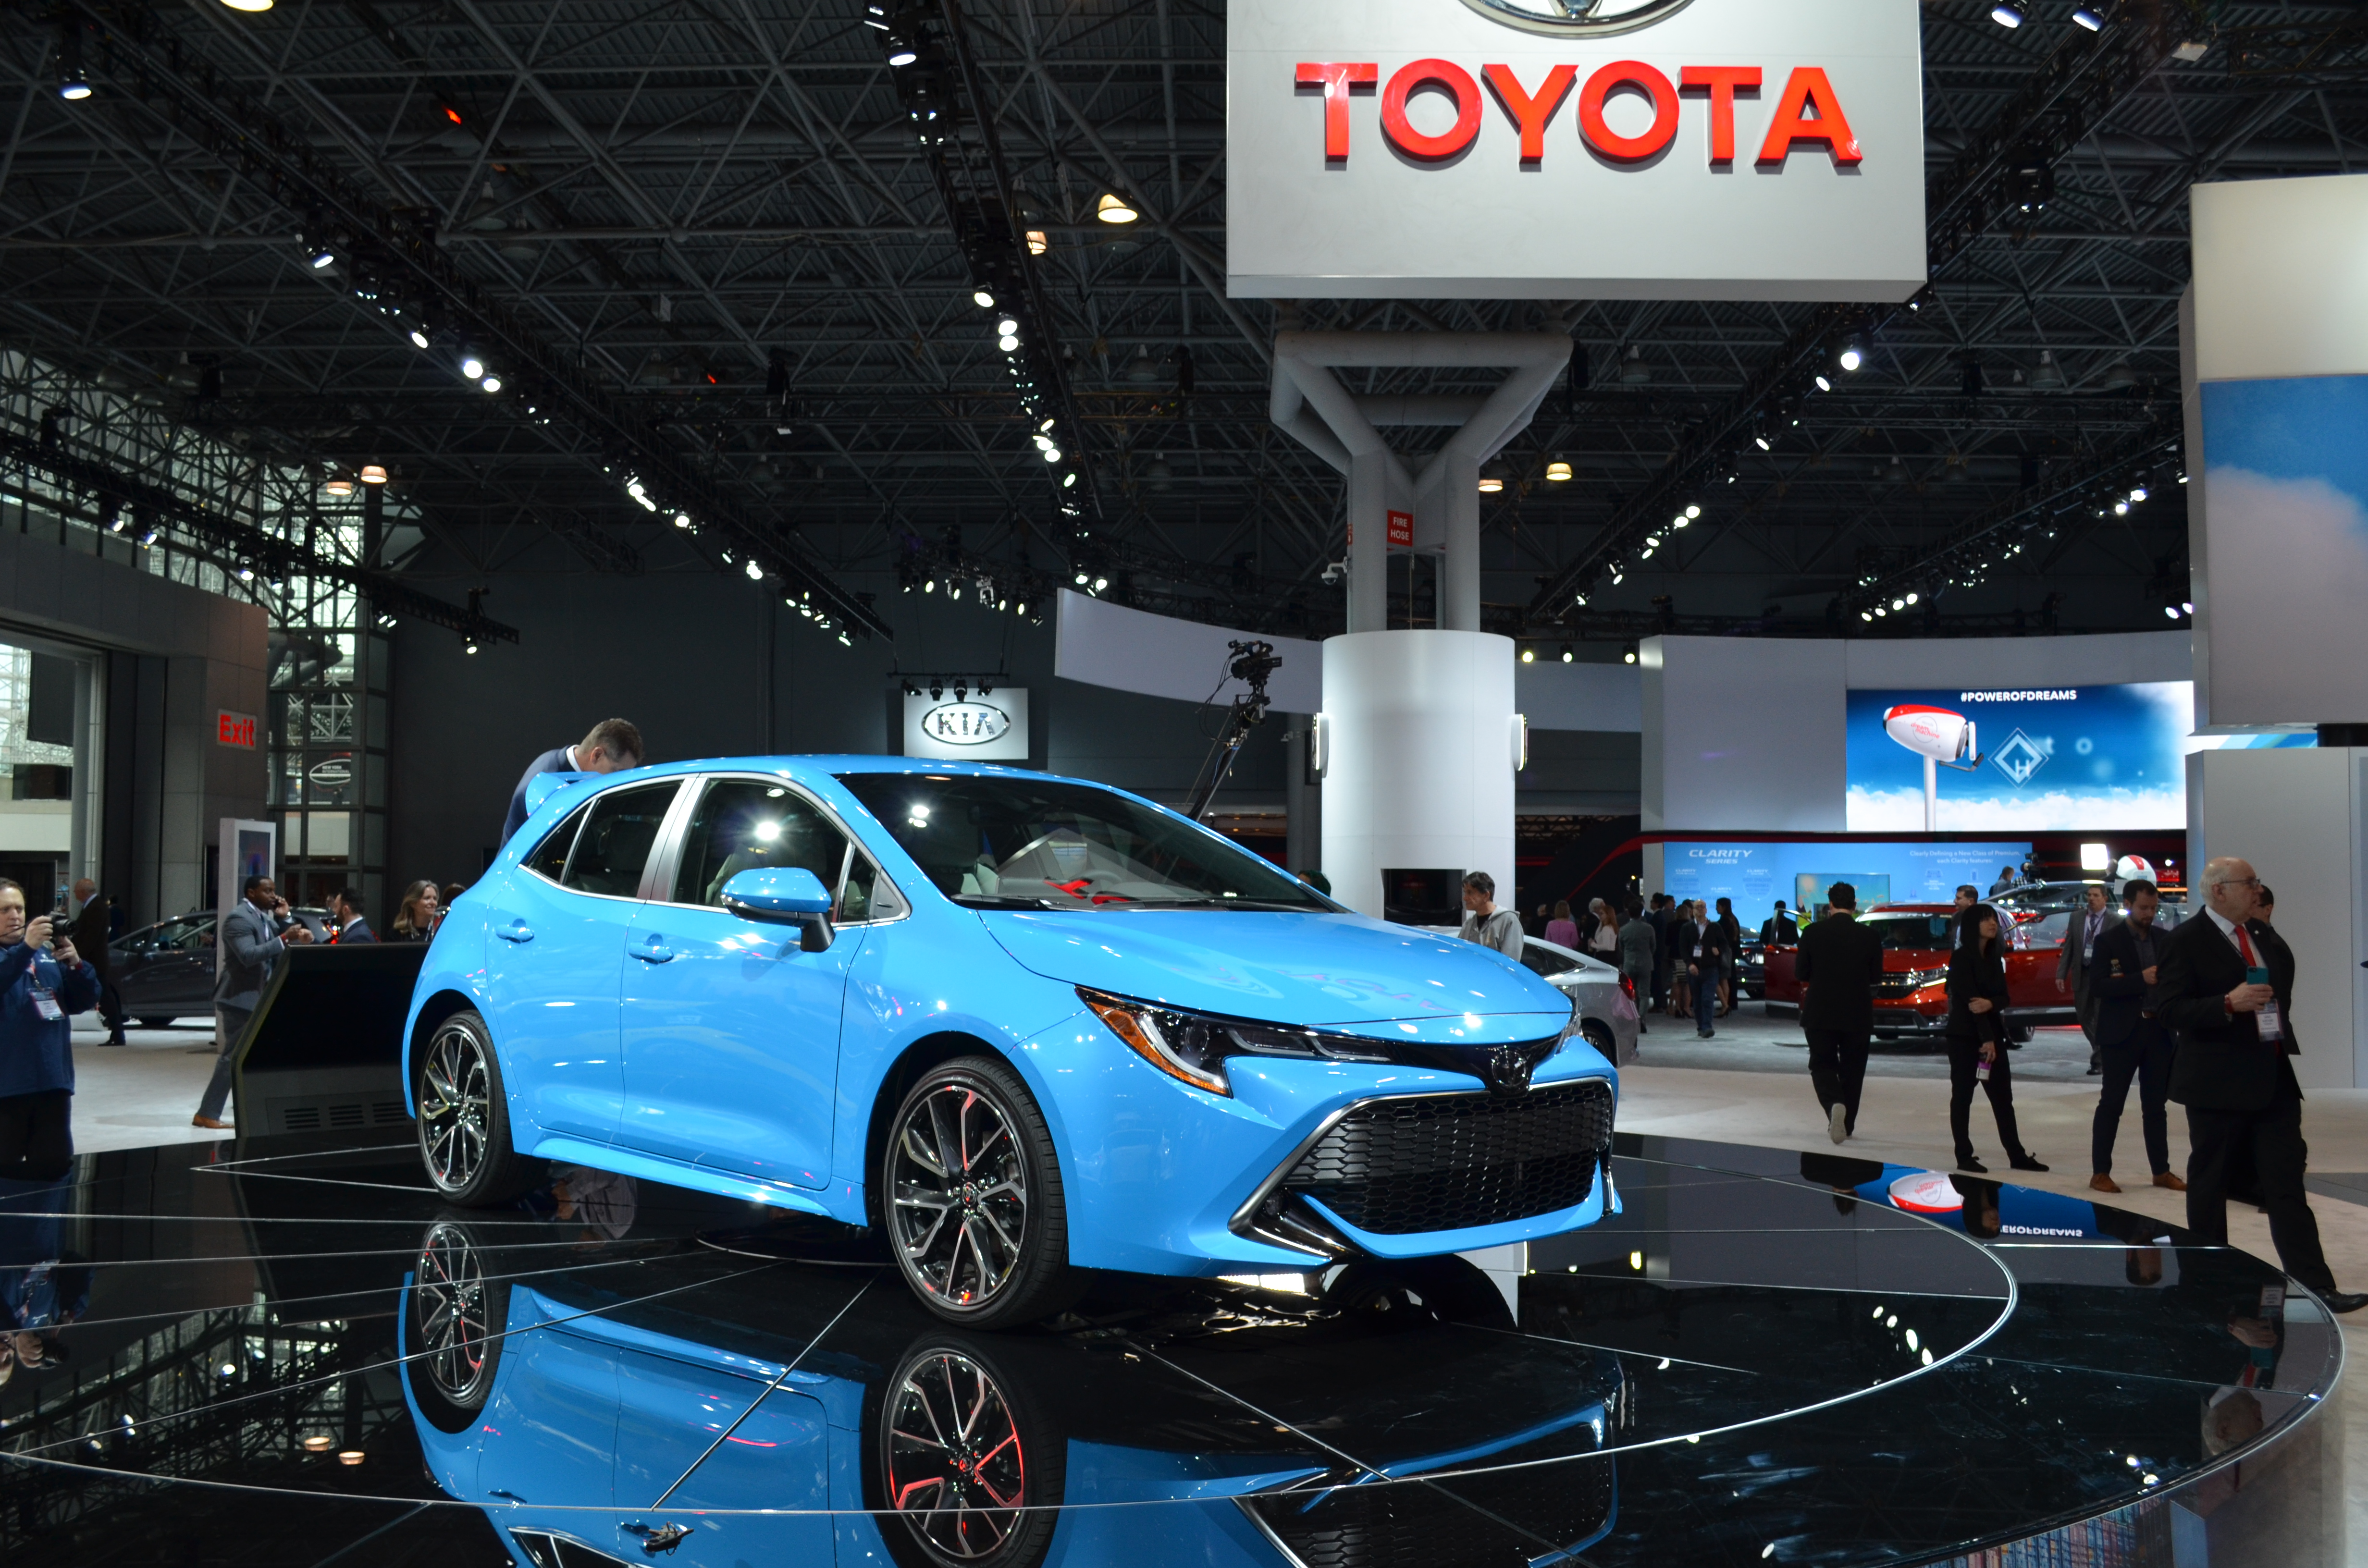 Toyota Unveils All-New Toyota Corolla Hatchback Model at the Javitz Center